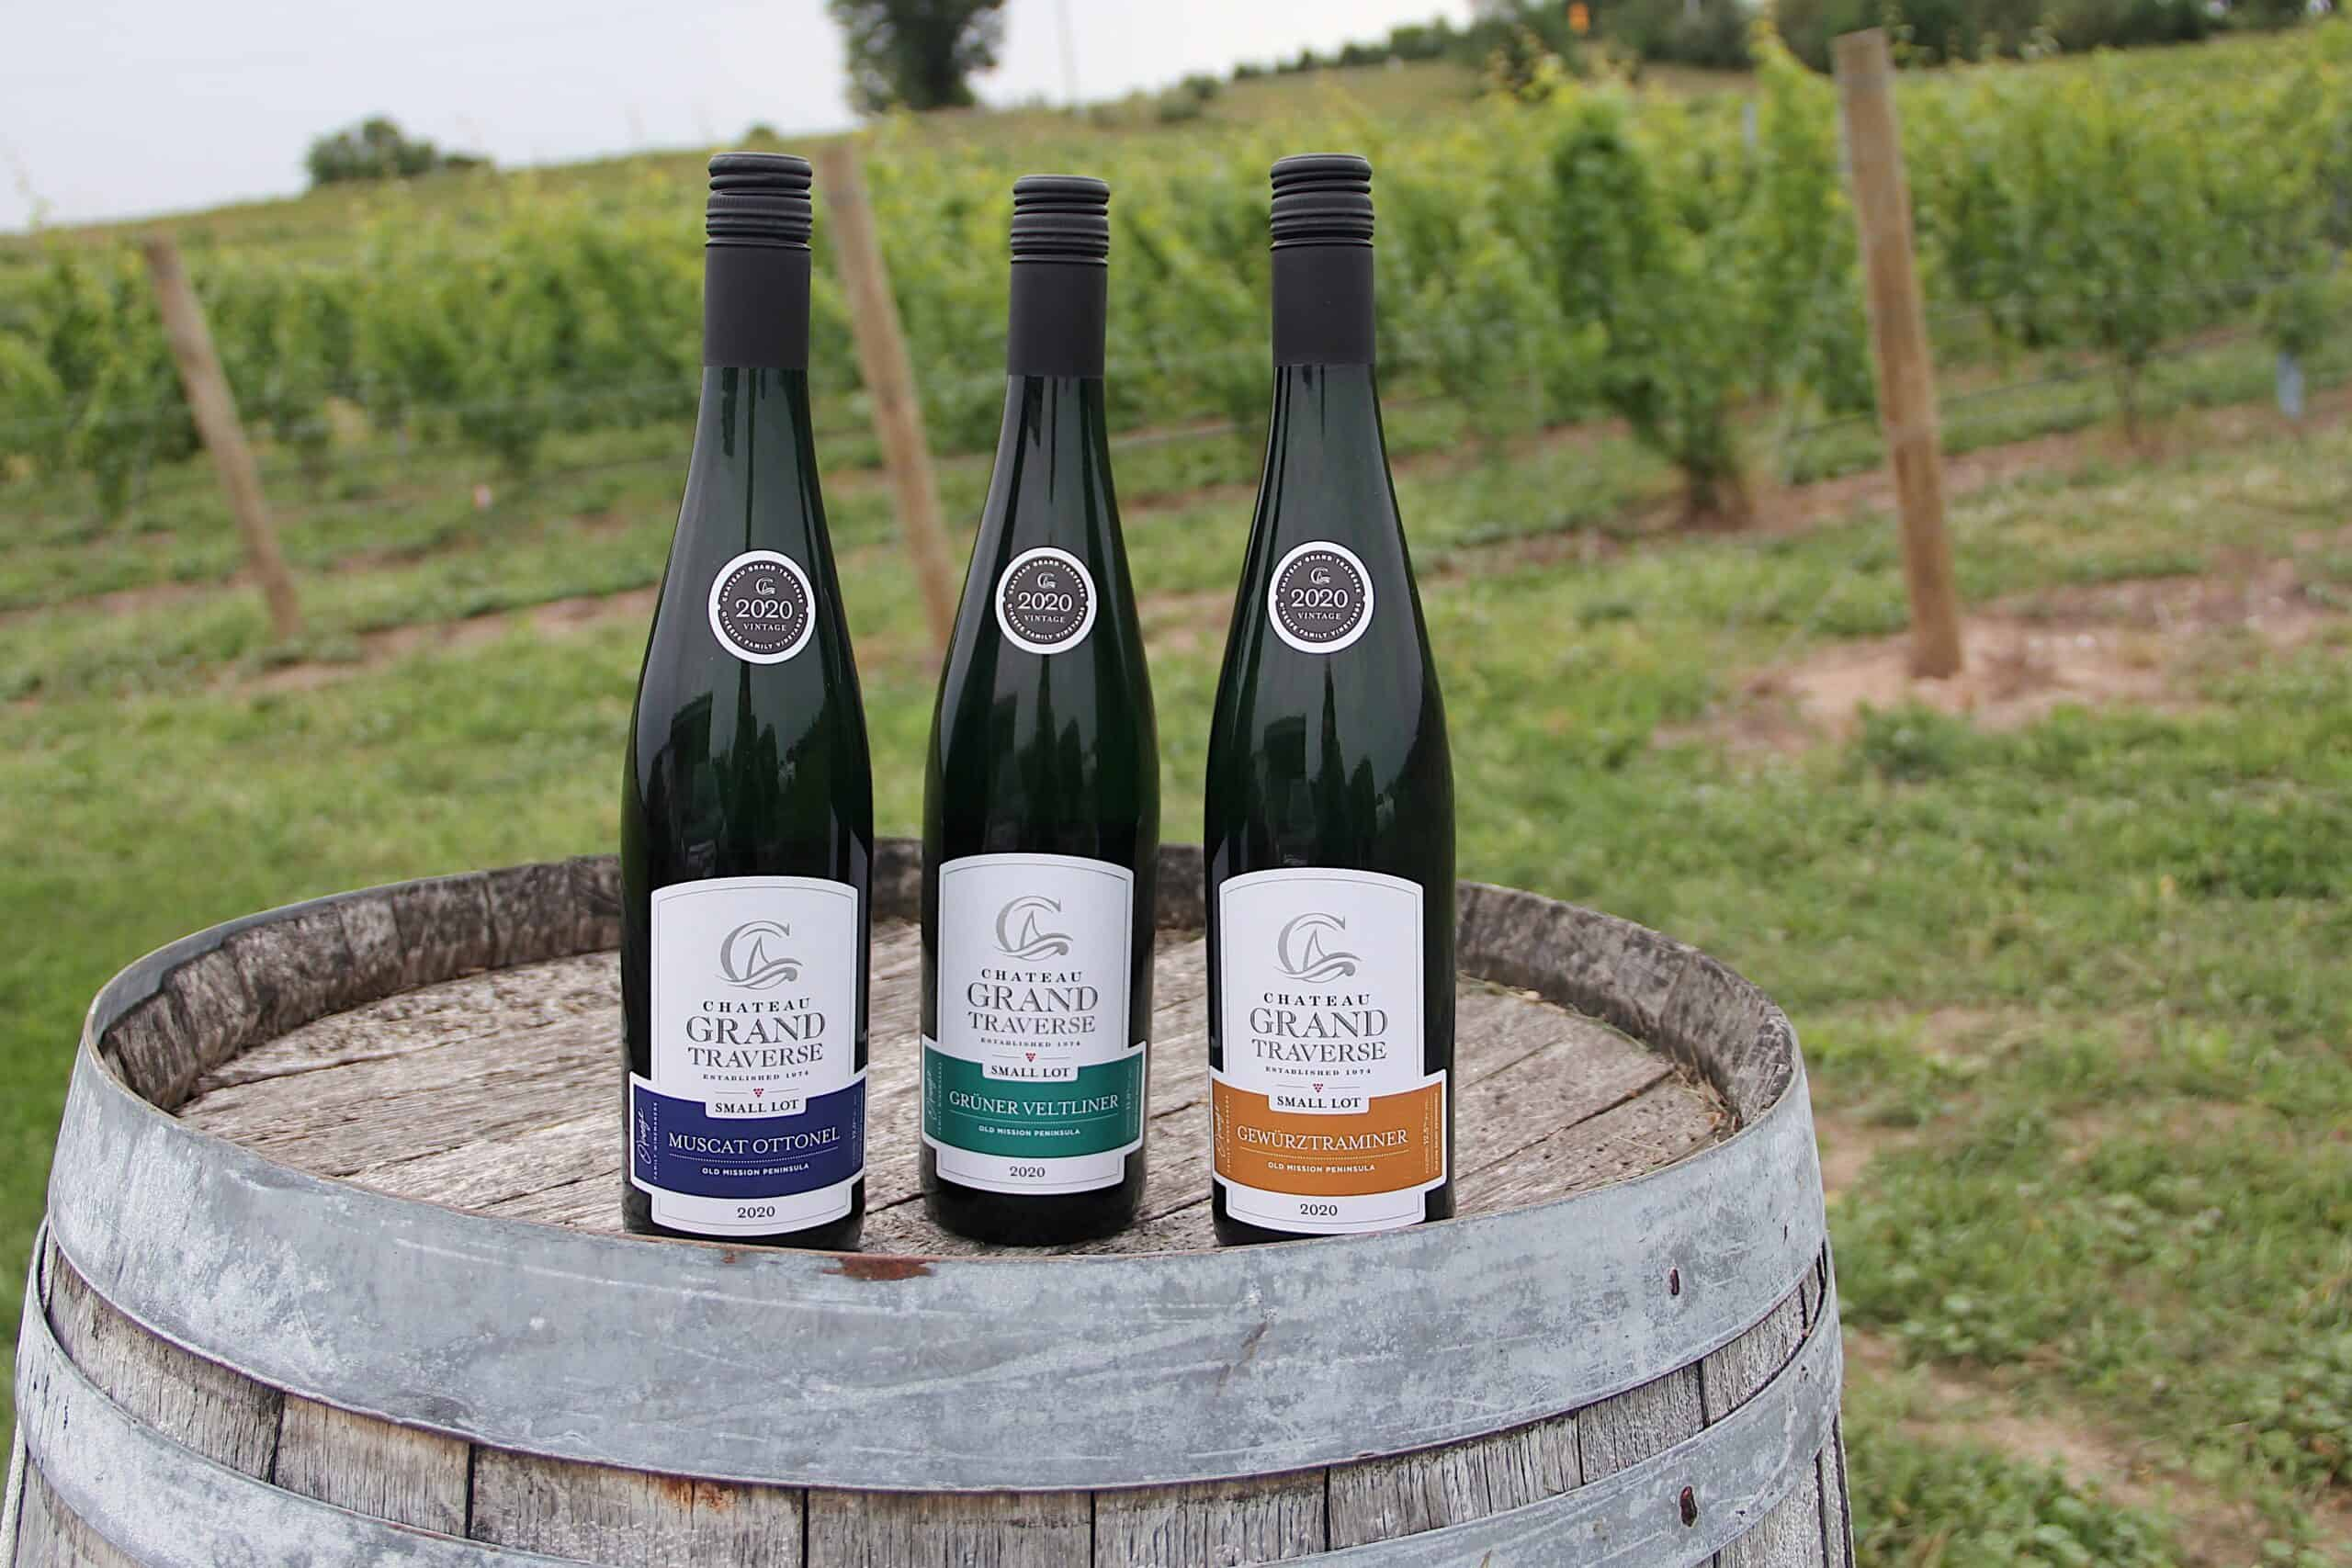 Outdoors shot of Chateau Grand Traverse wines.